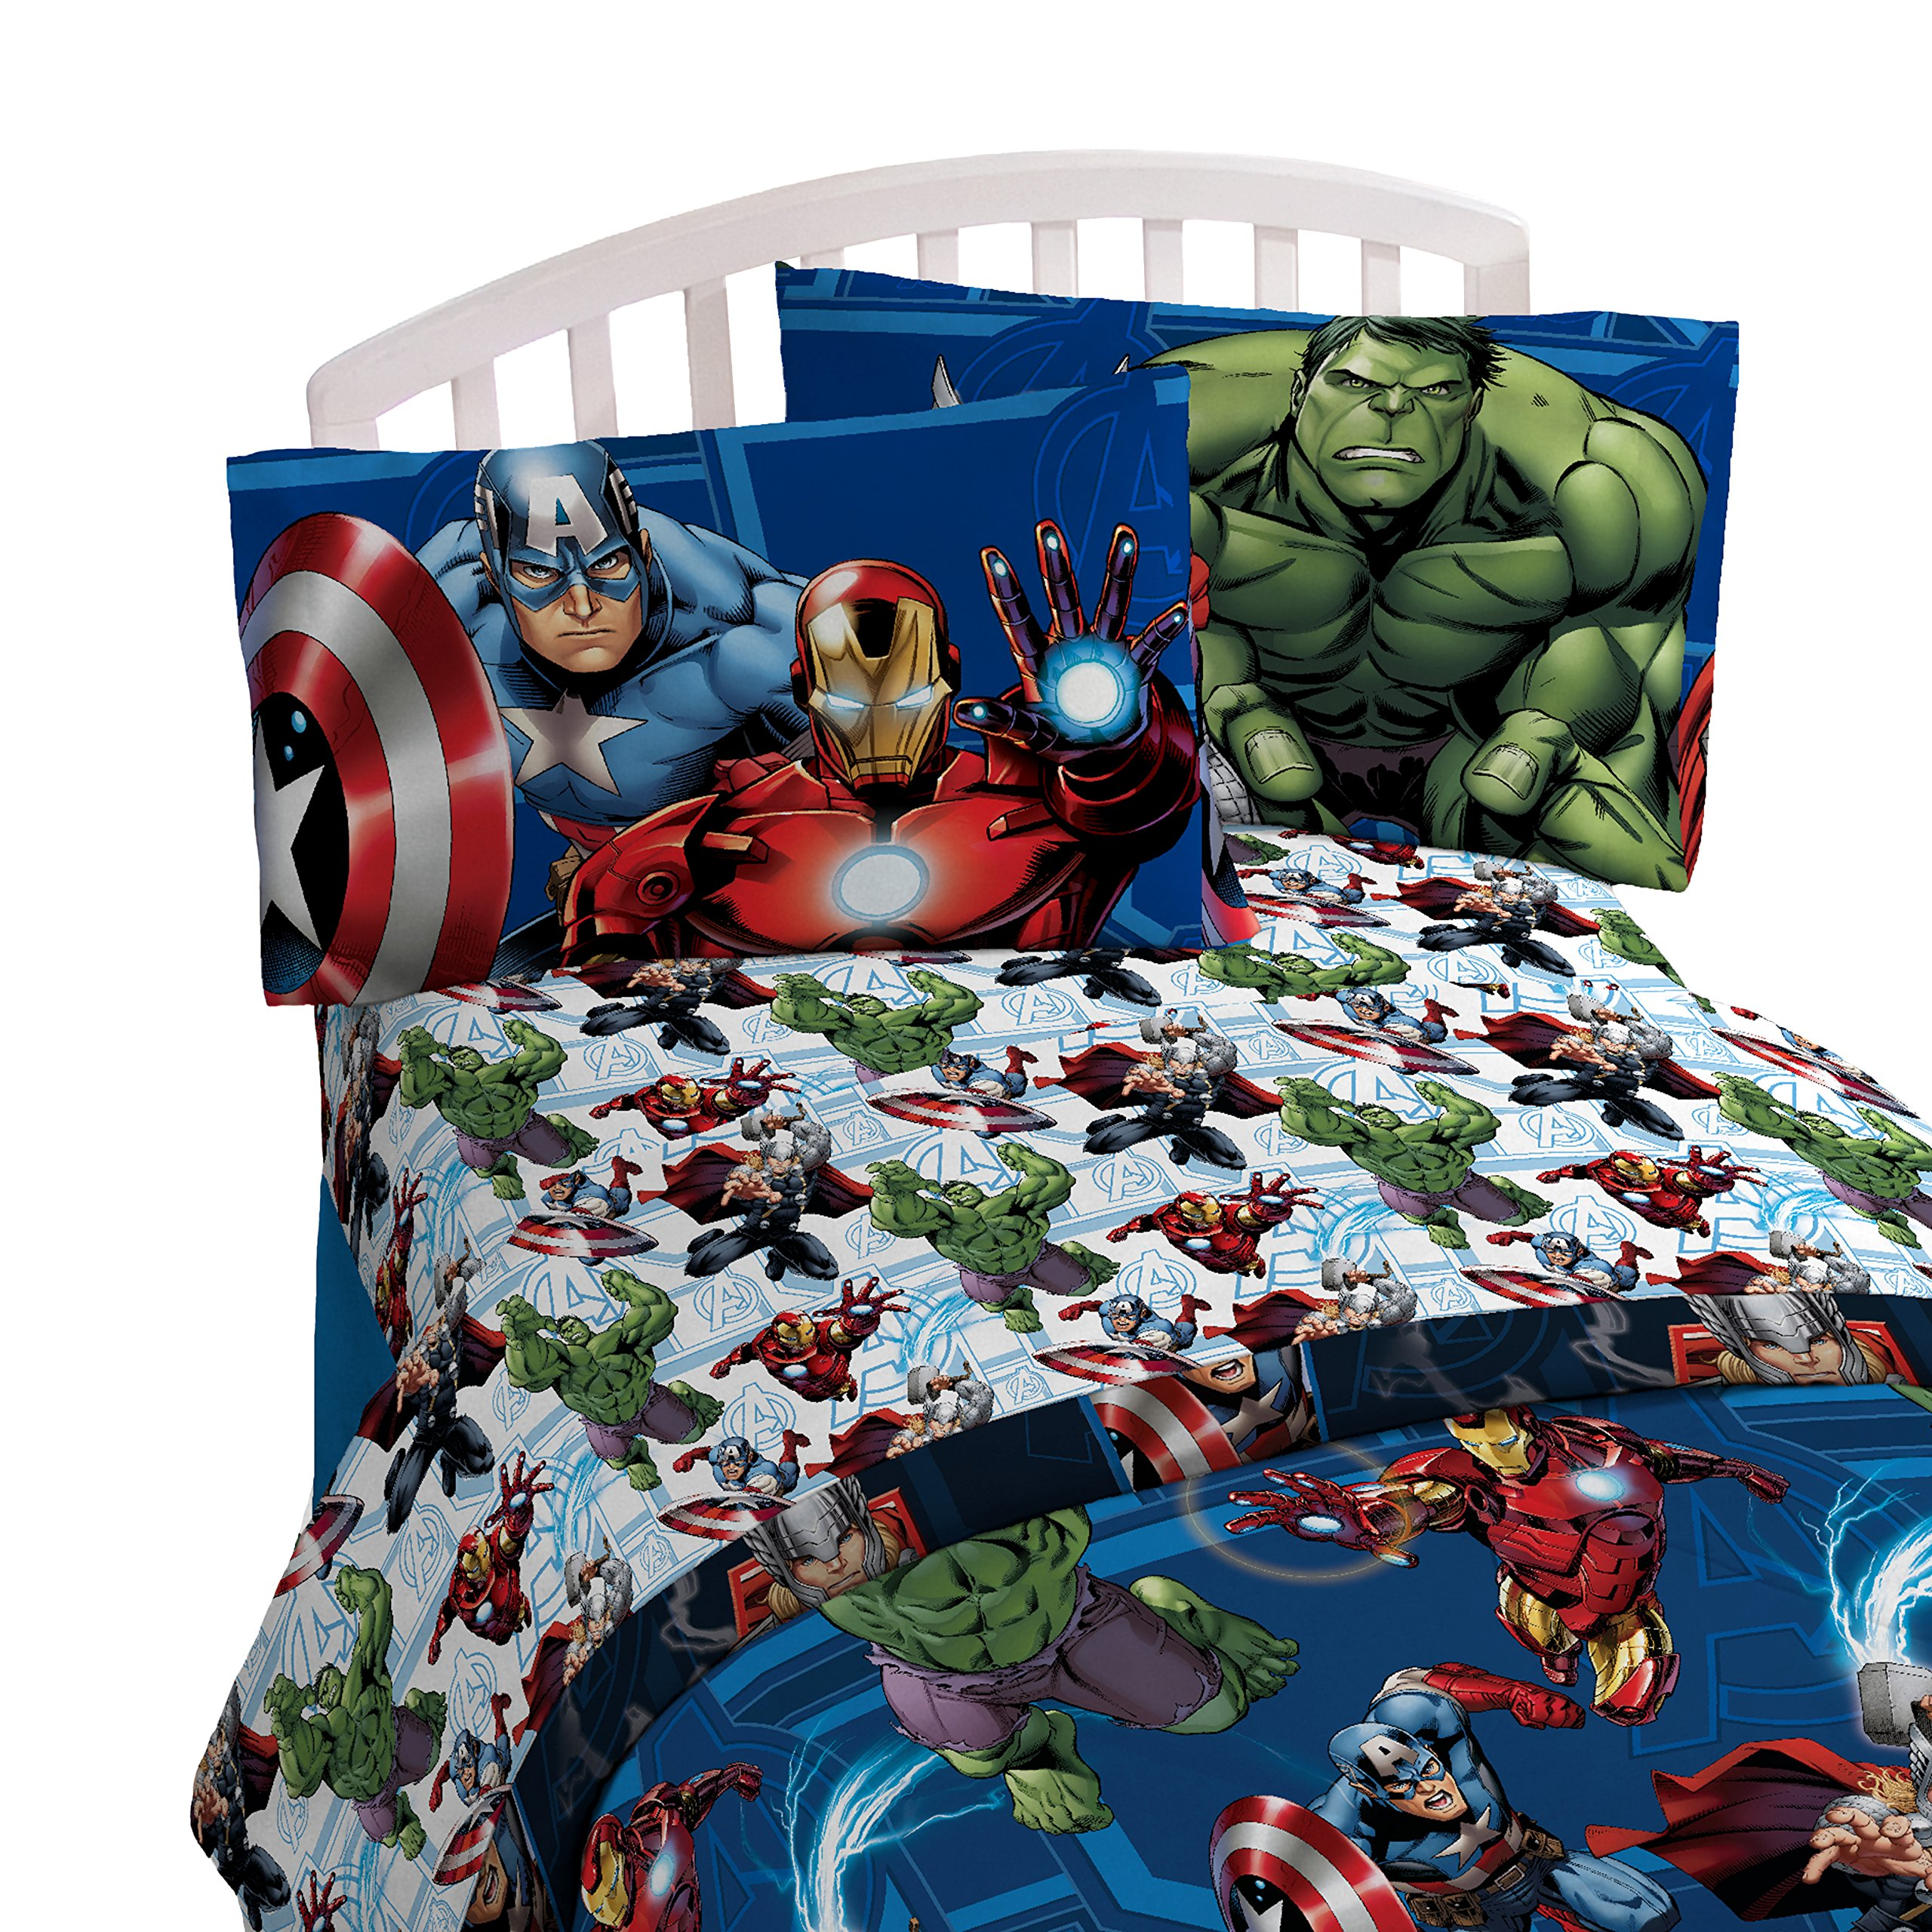 Marvel Avengers Heroic Age Blue/White 3 Piece Twin Sheet Set with Captain America, Thor, Ironman & Hulk by Marvel (Image #3)